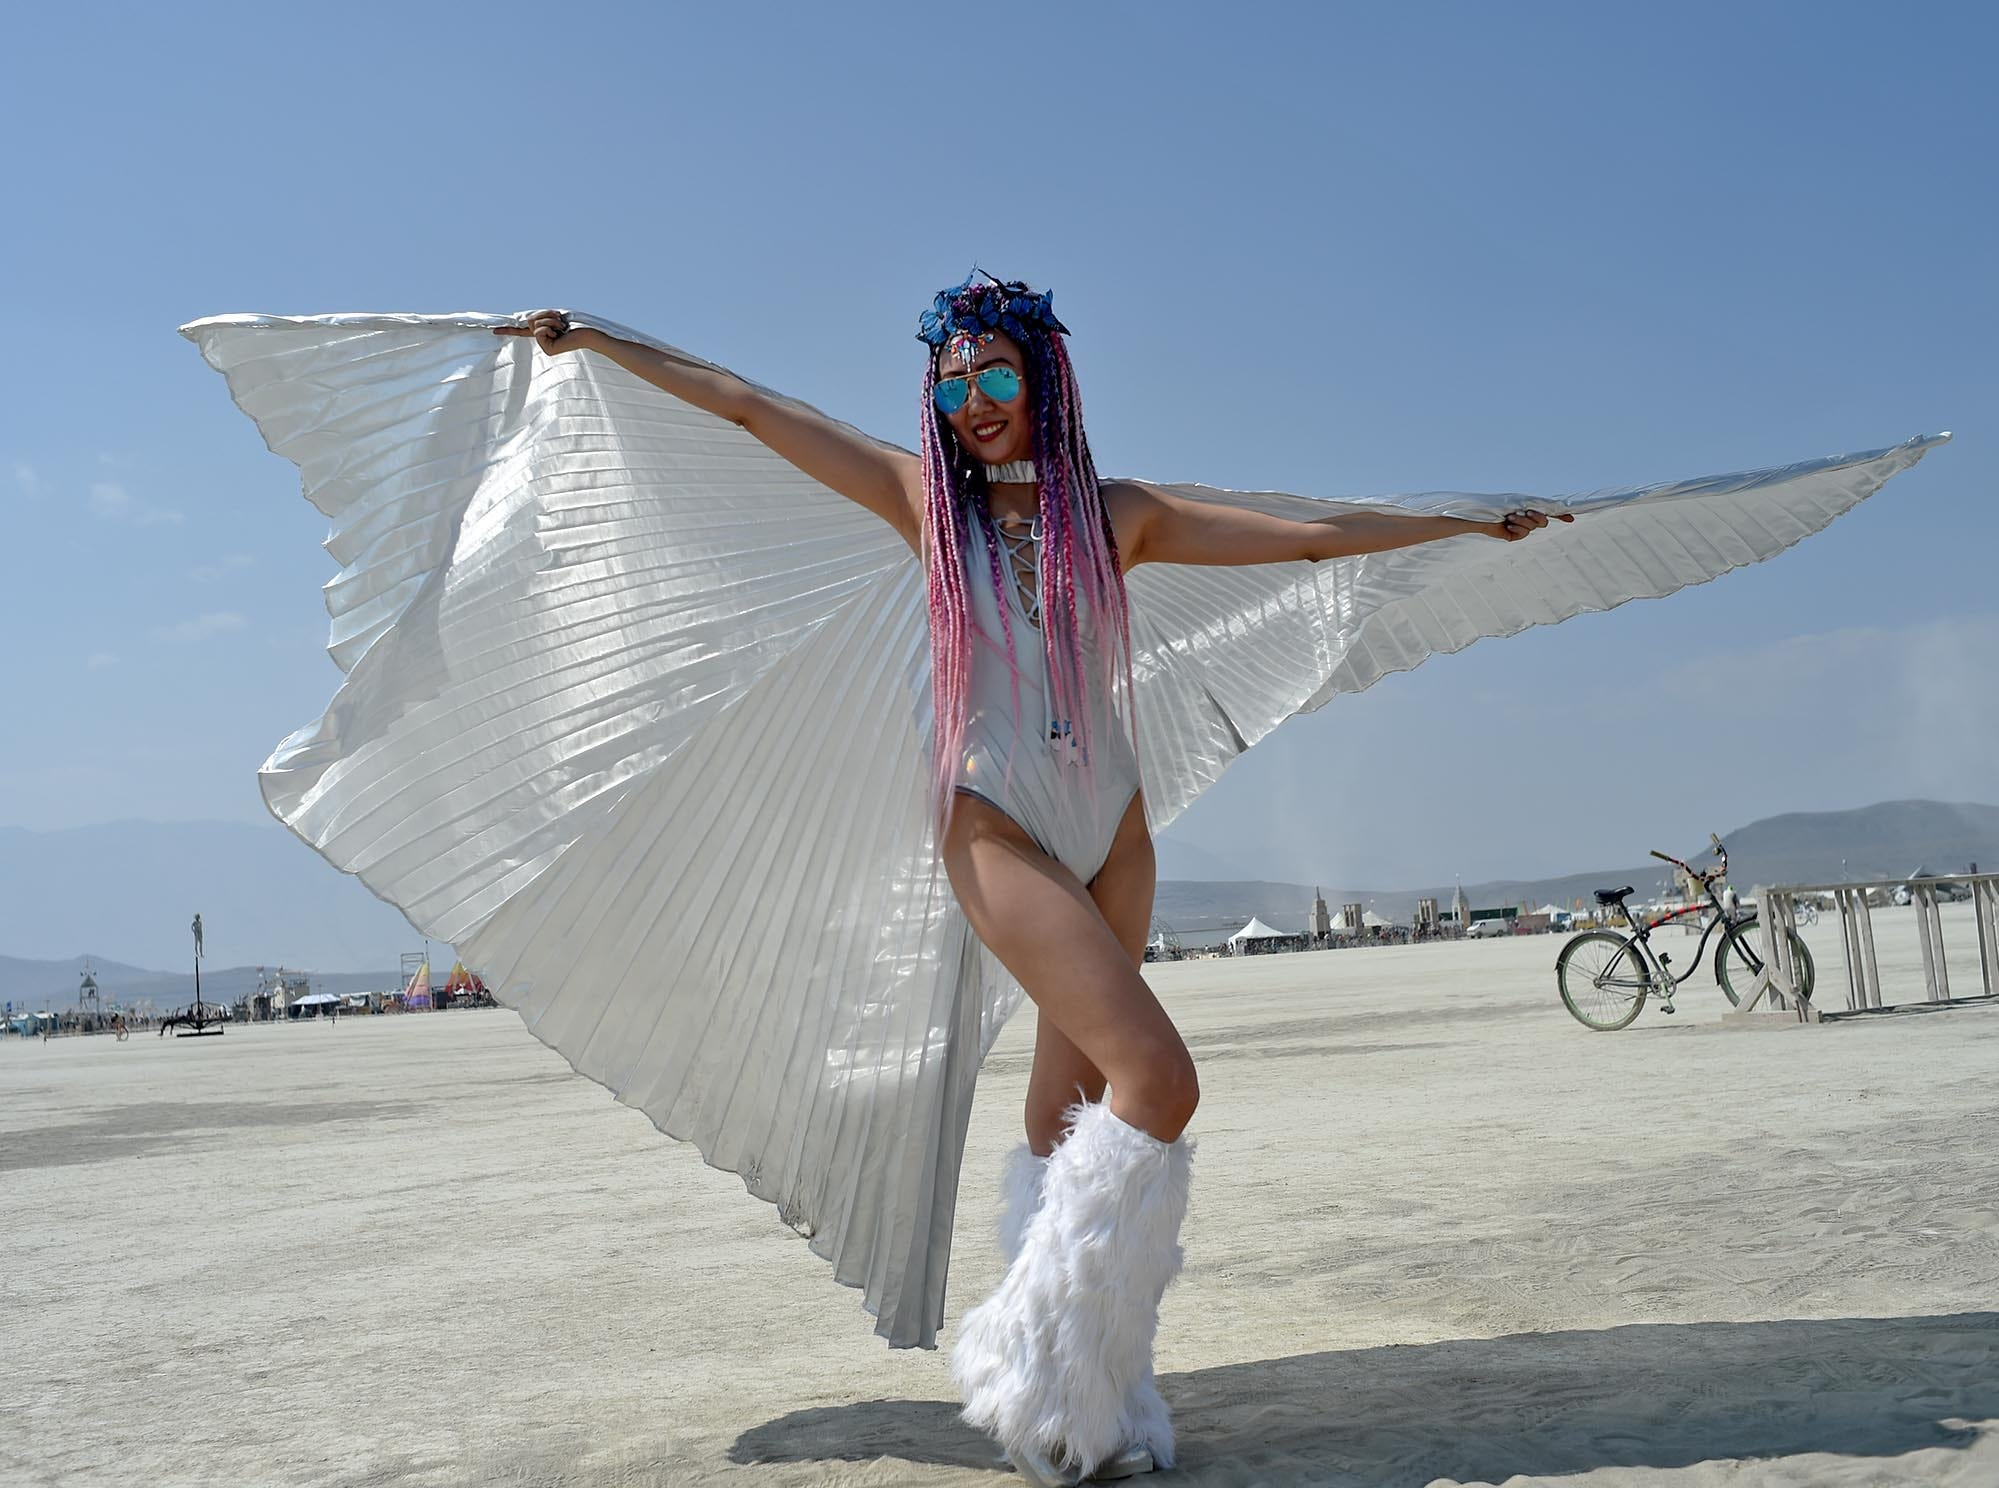 Images from Burning Man on Monday August 27, 2018.